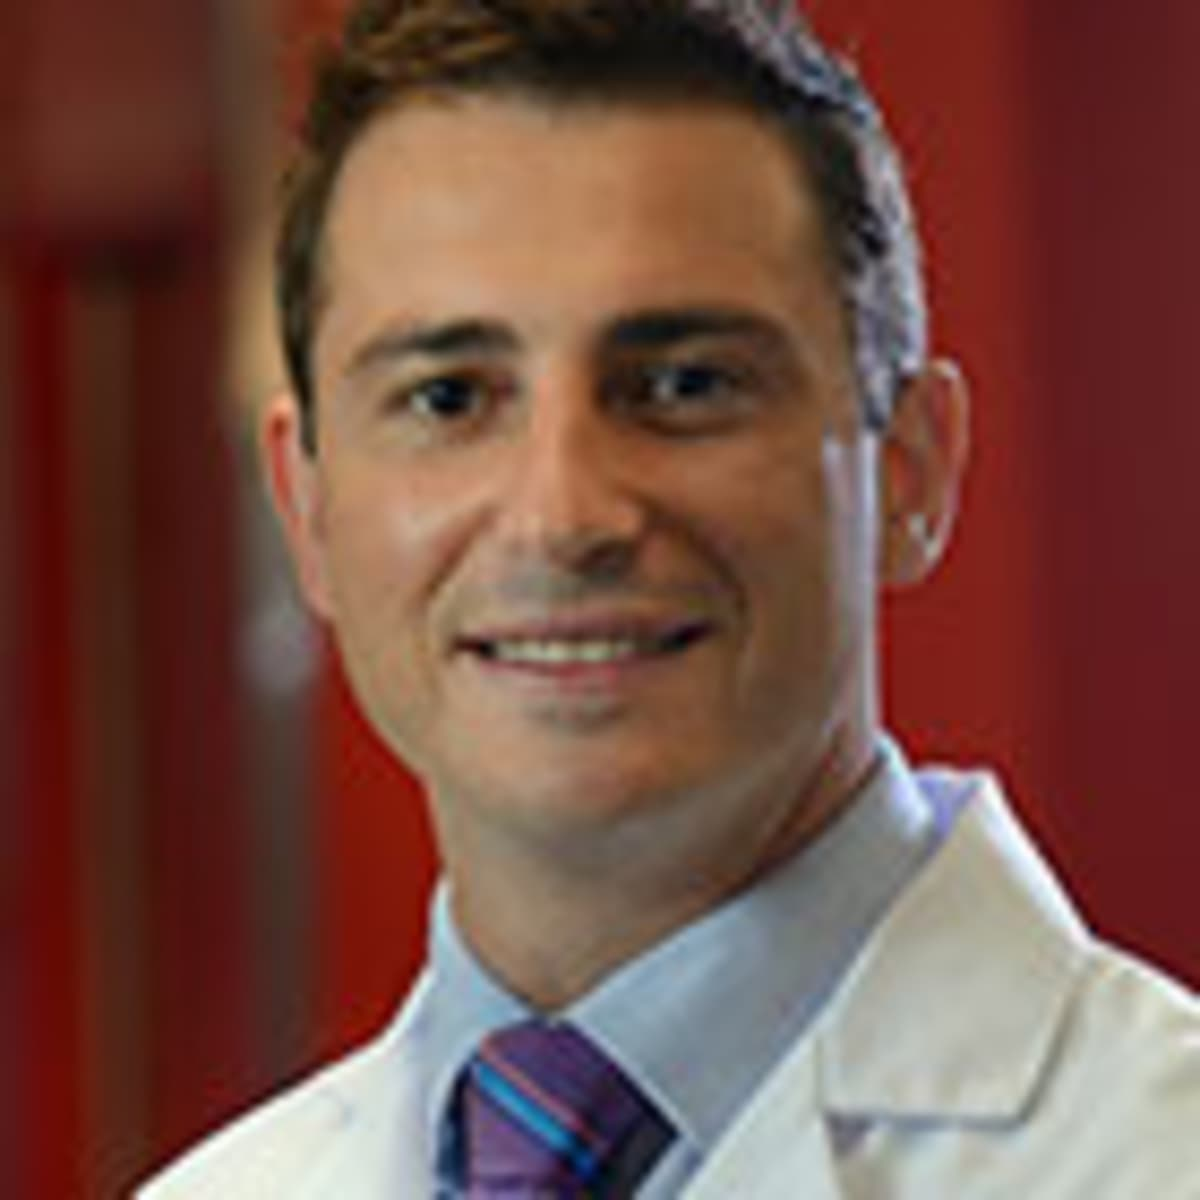 dr kenton fibel md new york ny sports medicine doctor